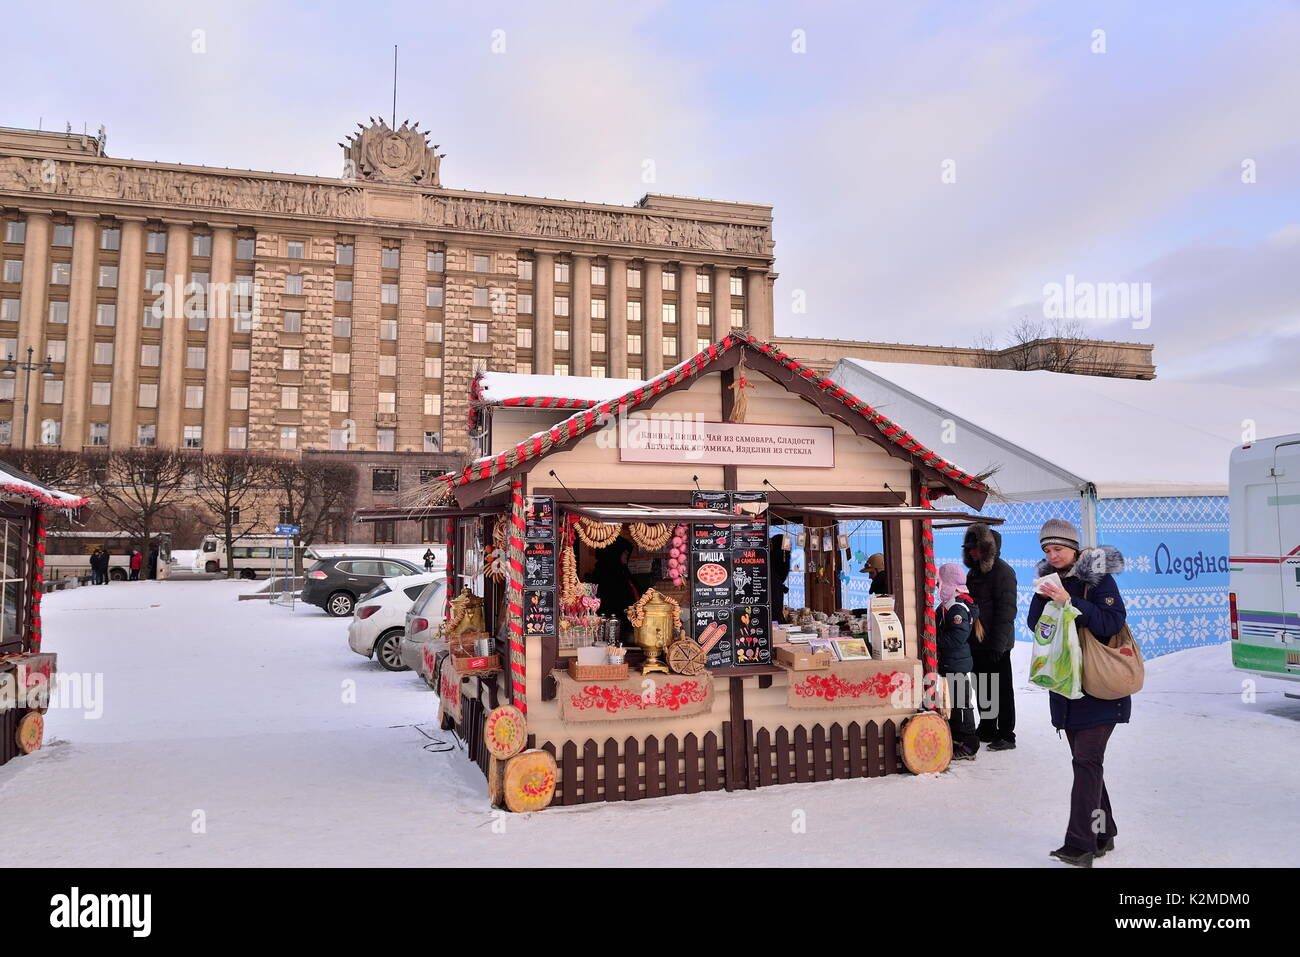 Tea house at the carnival in the Moscow area - Stock Image